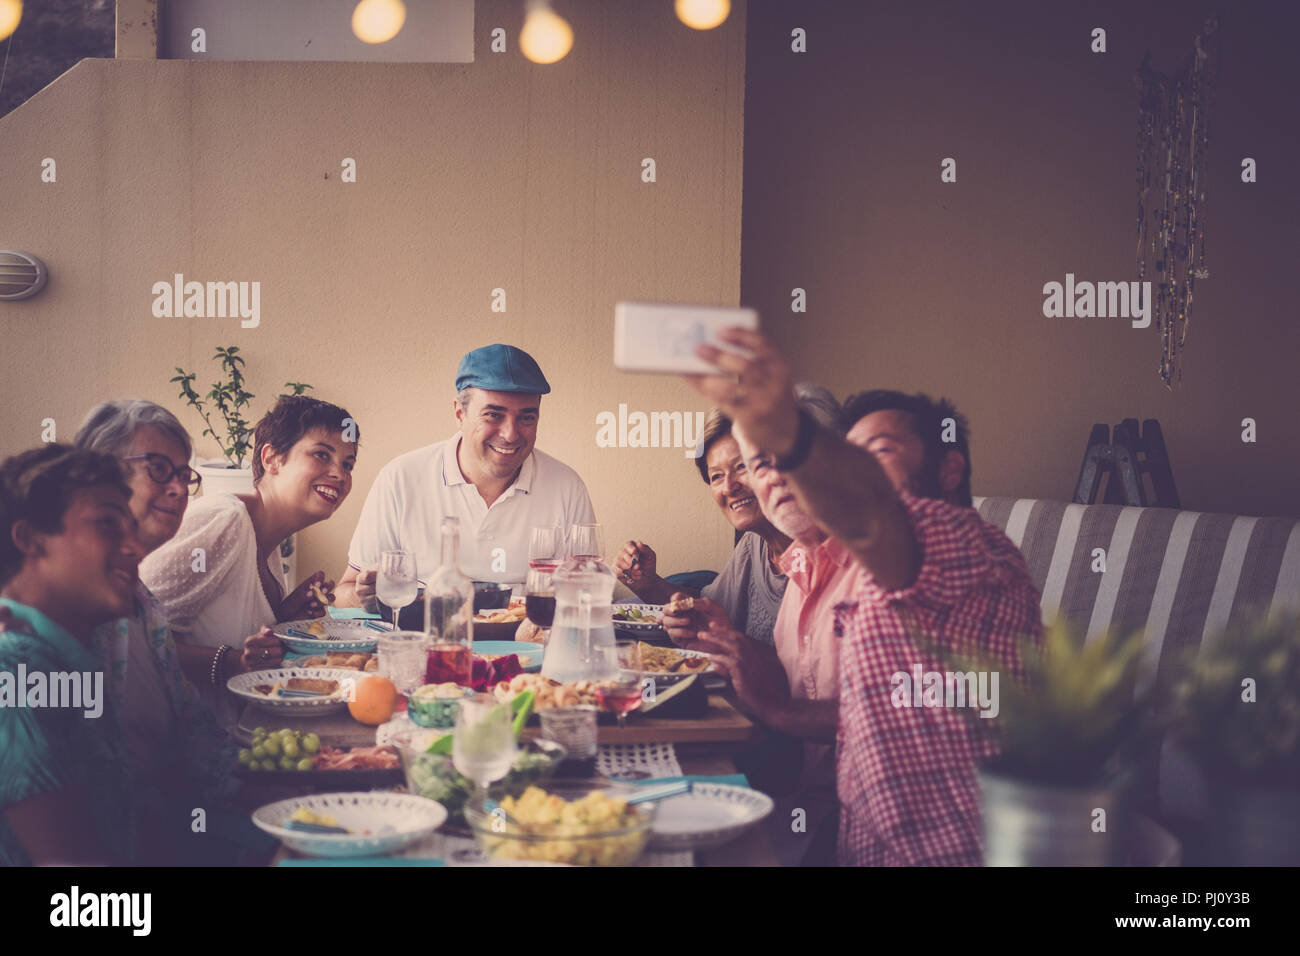 happy group of people in family friendship all together celebrating and having an outdoor nice dinner at home in the terrace. a man take selfie for al - Stock Image